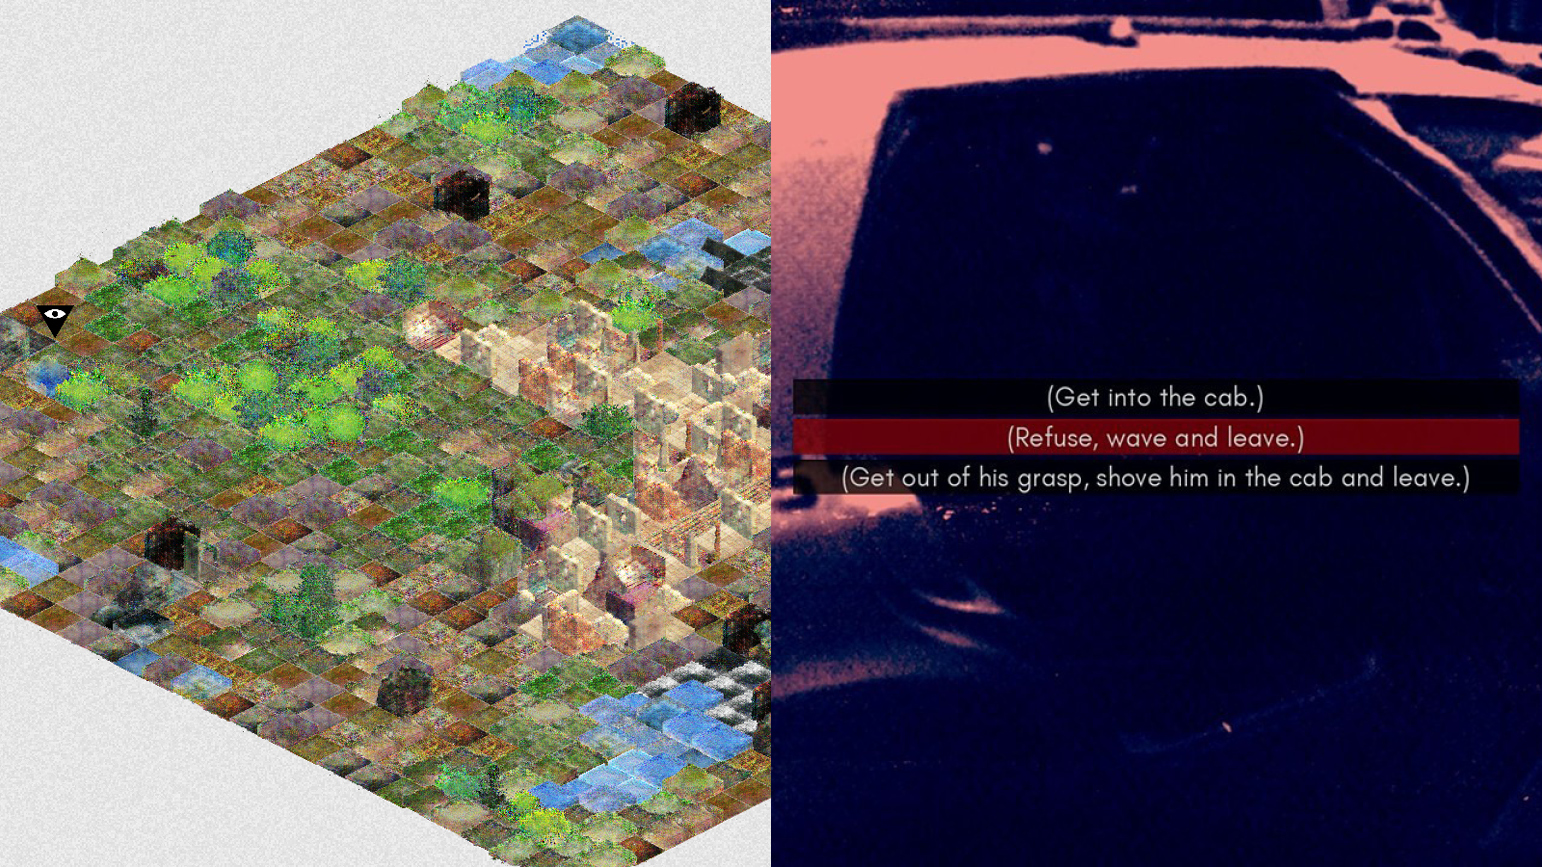 Two stills from video games, one showing digital terrain floating against a white background and the other a stylized image of a taxi